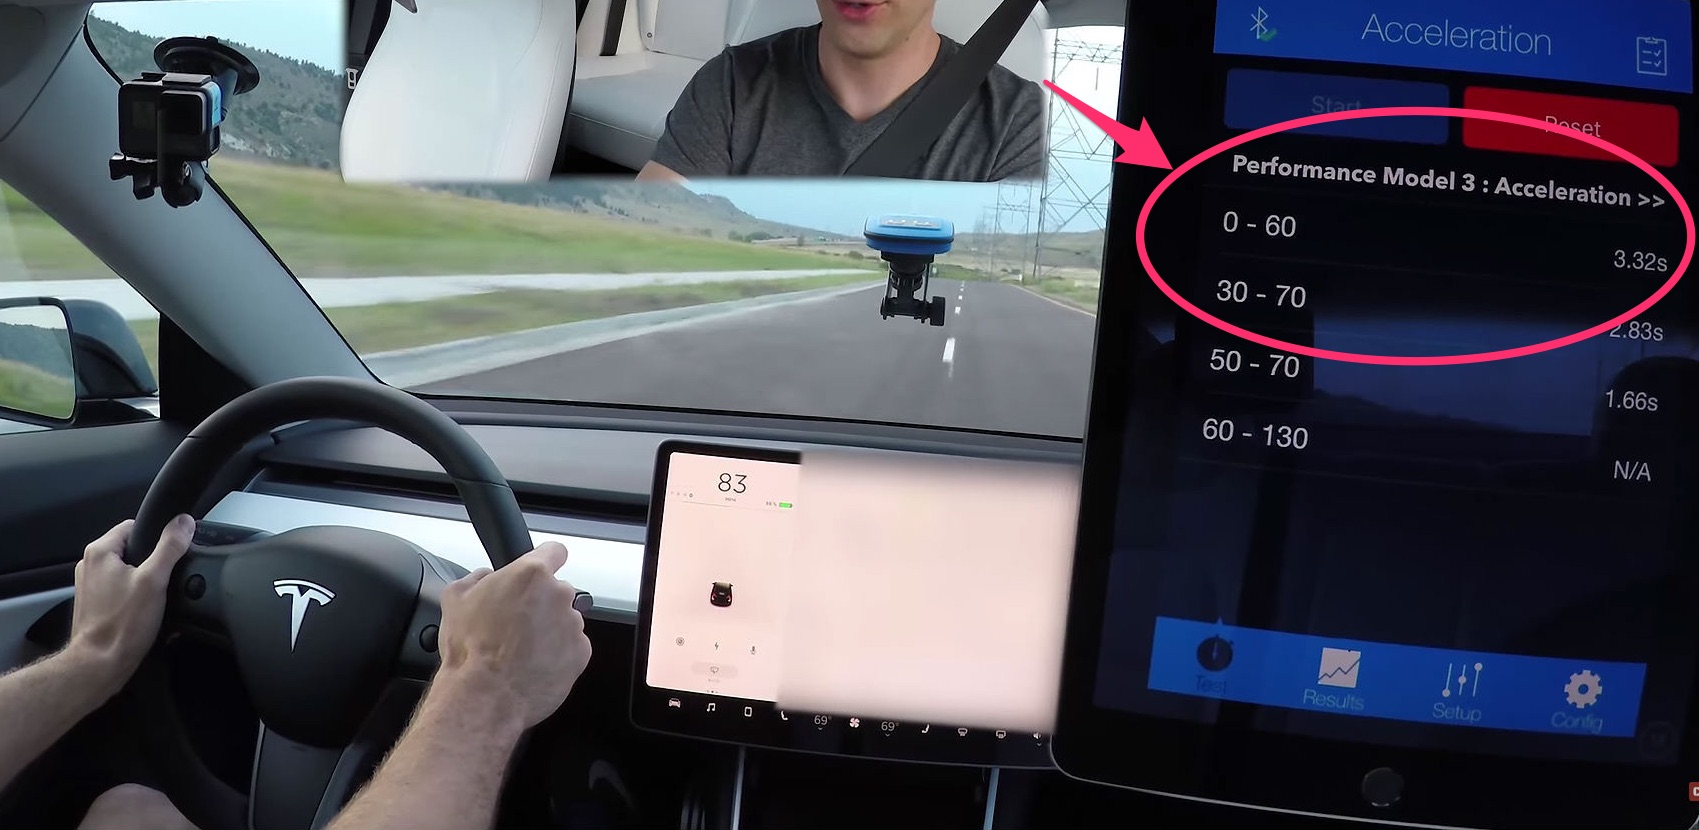 Model 3 Performance Tesla Has Lied About Its 0 60 Time